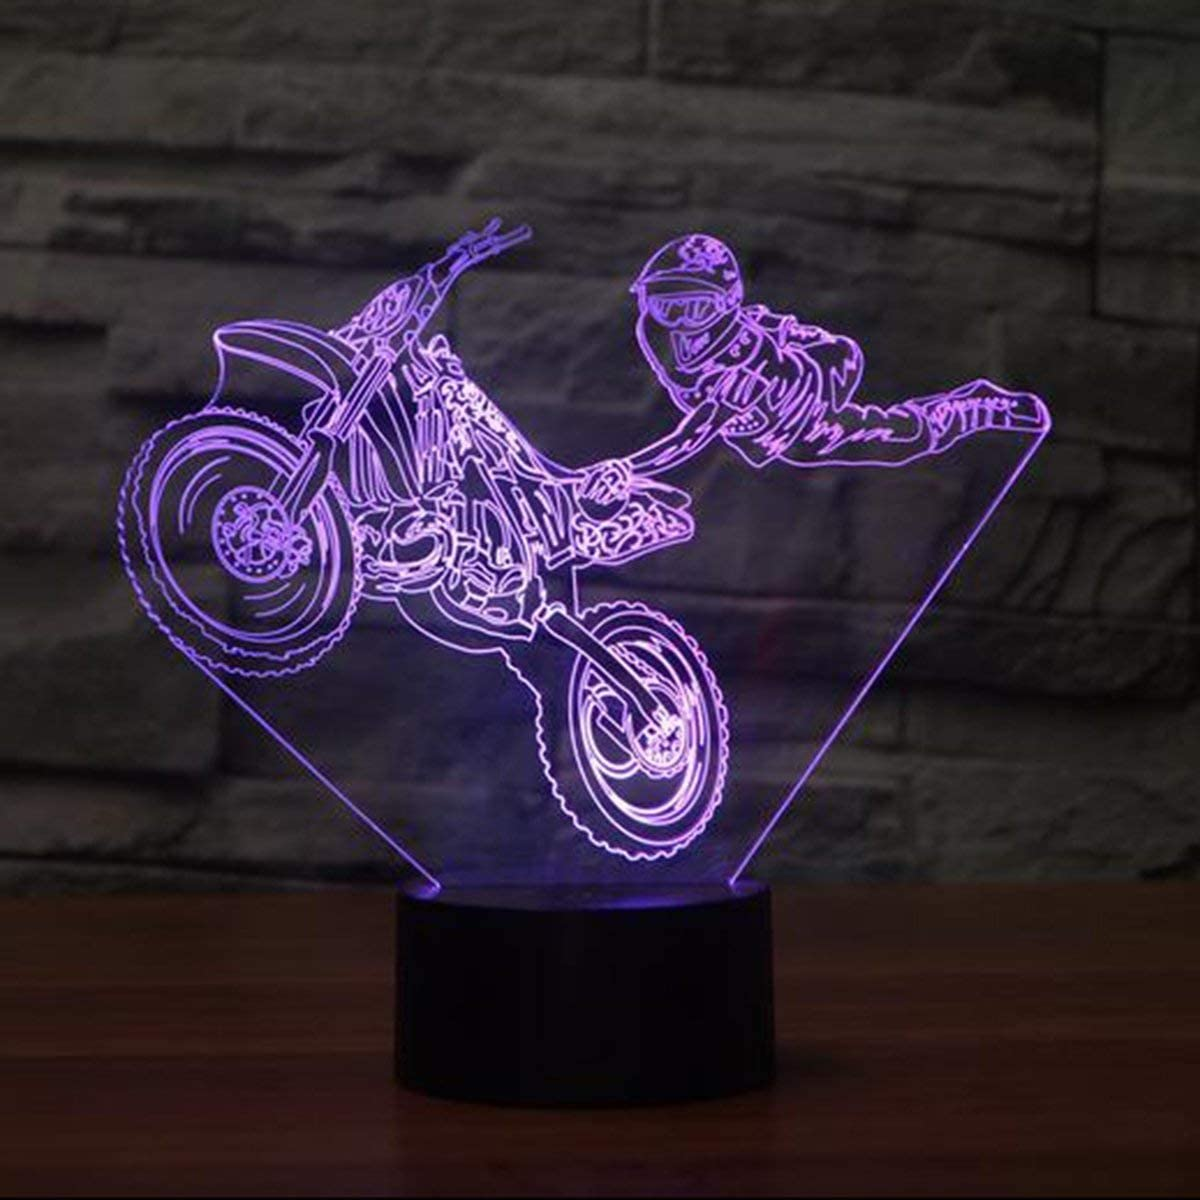 3D Motorcycle Stunts Night Light Illusion Lamp 7 Colors Change LED Touch Switch USB Power Kids Toys Decor Decorations Table Lamp Children Christmas Valentines Birthday Gift